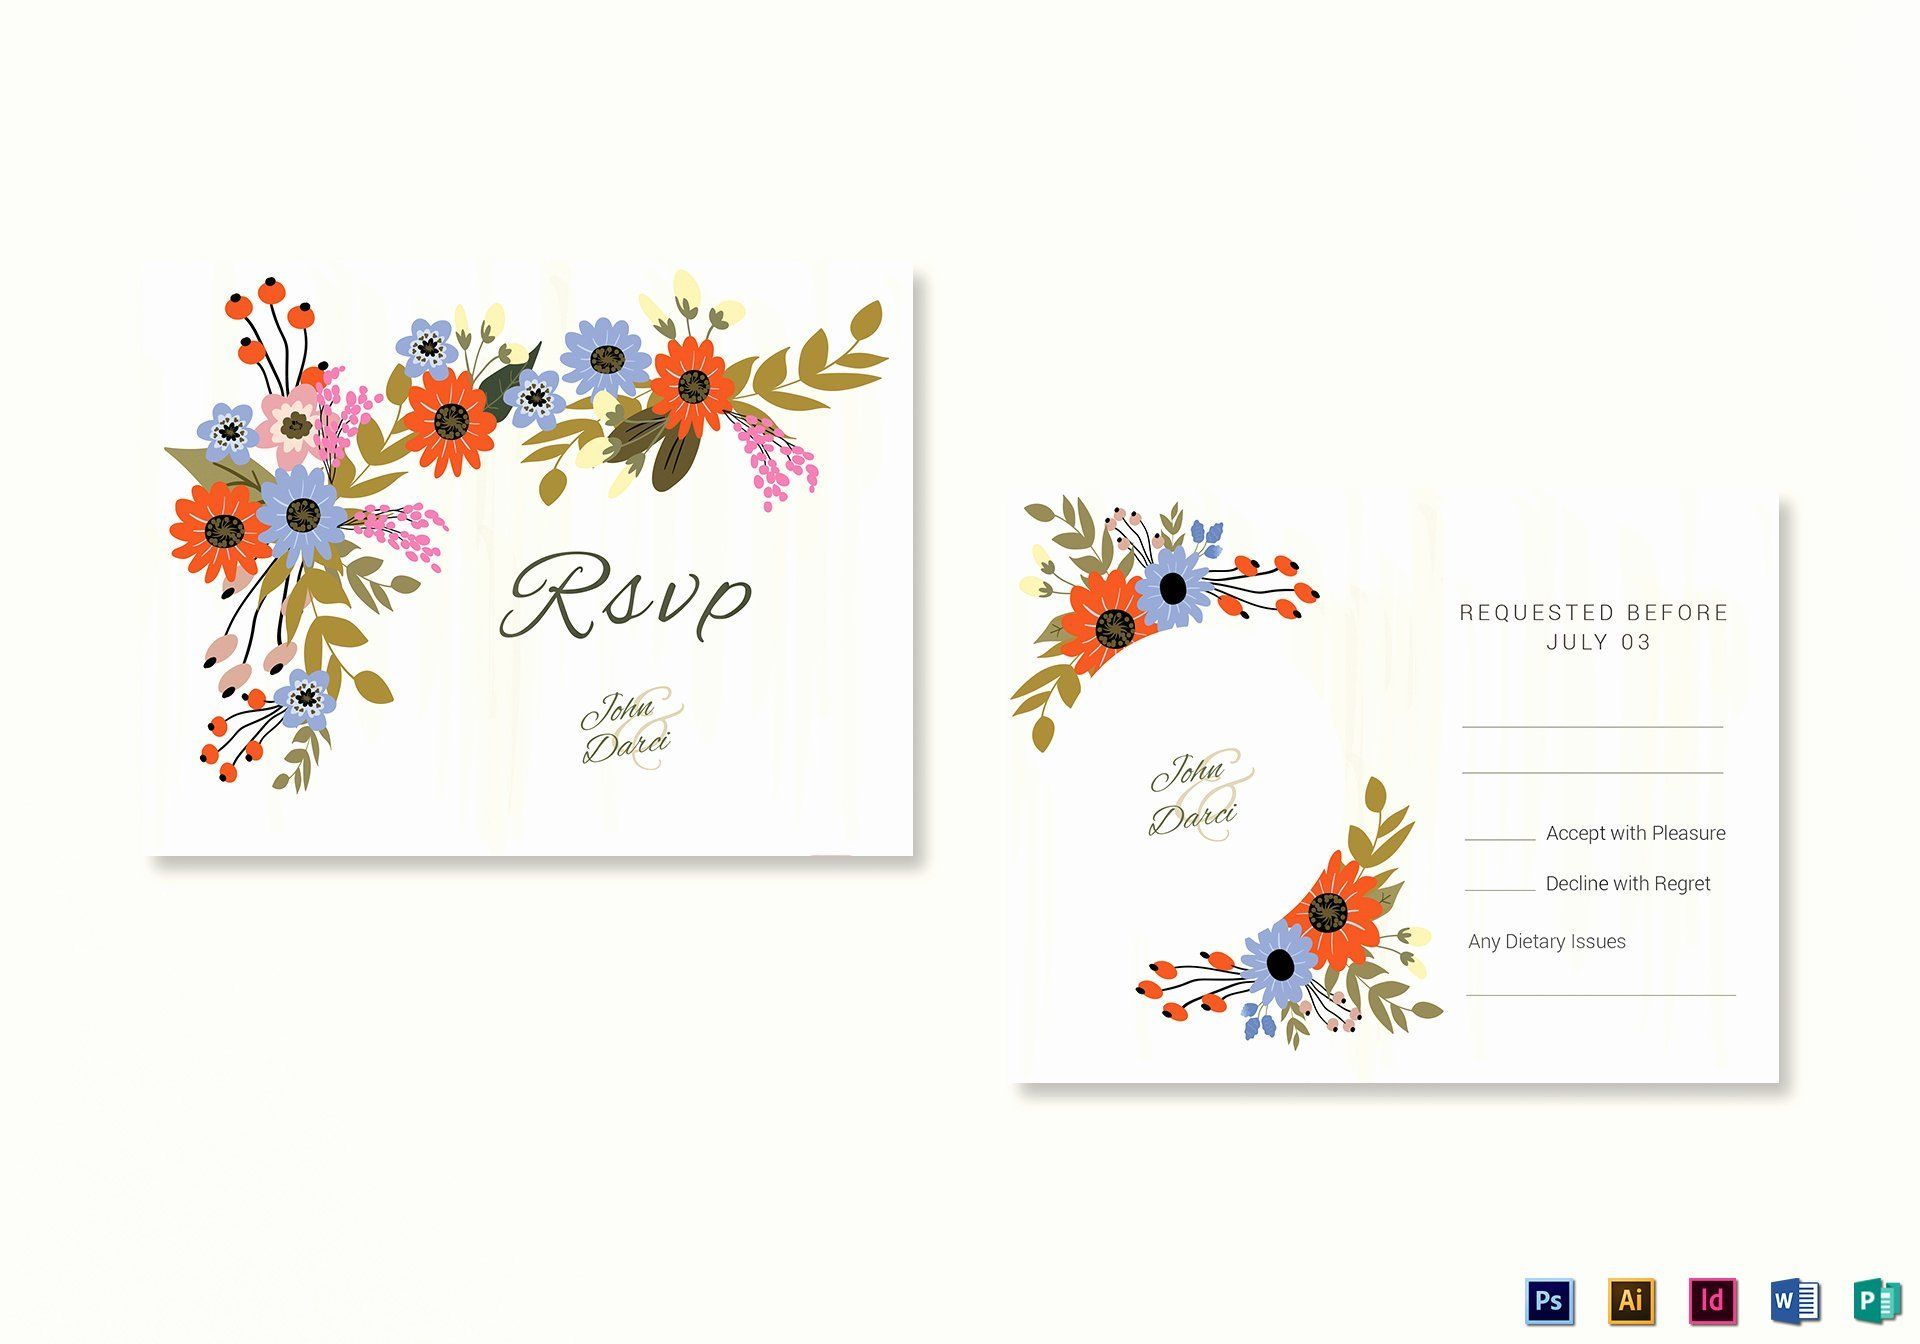 Rsvp Cards Templates Awesome Rsvp Card Templates For Word Monzarglauf Verband In 2020 Rsvp Wedding Cards Wedding Card Templates Wedding Cards